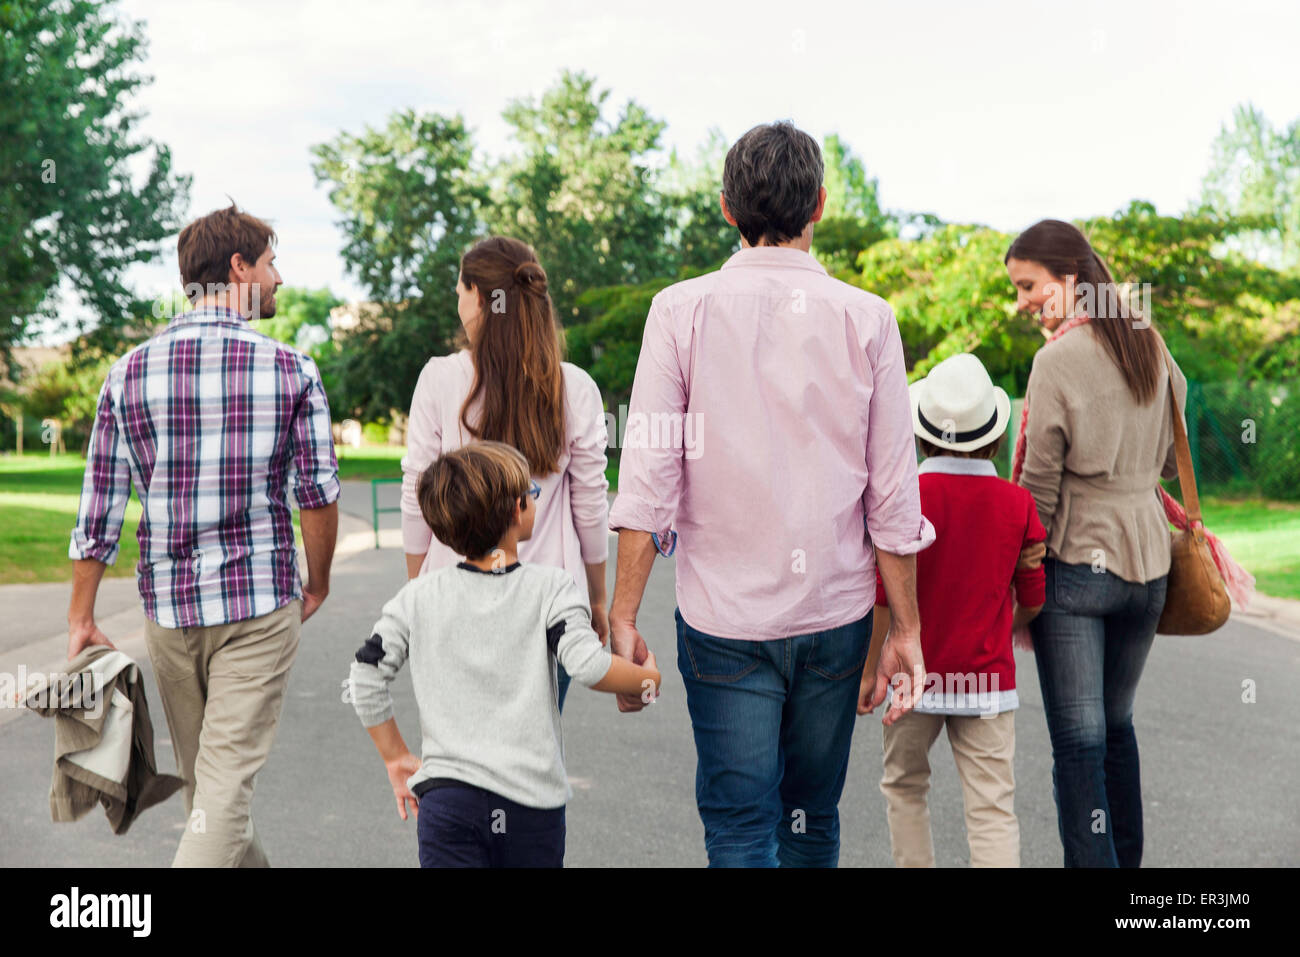 Family walking together outdoors, rear view - Stock Image